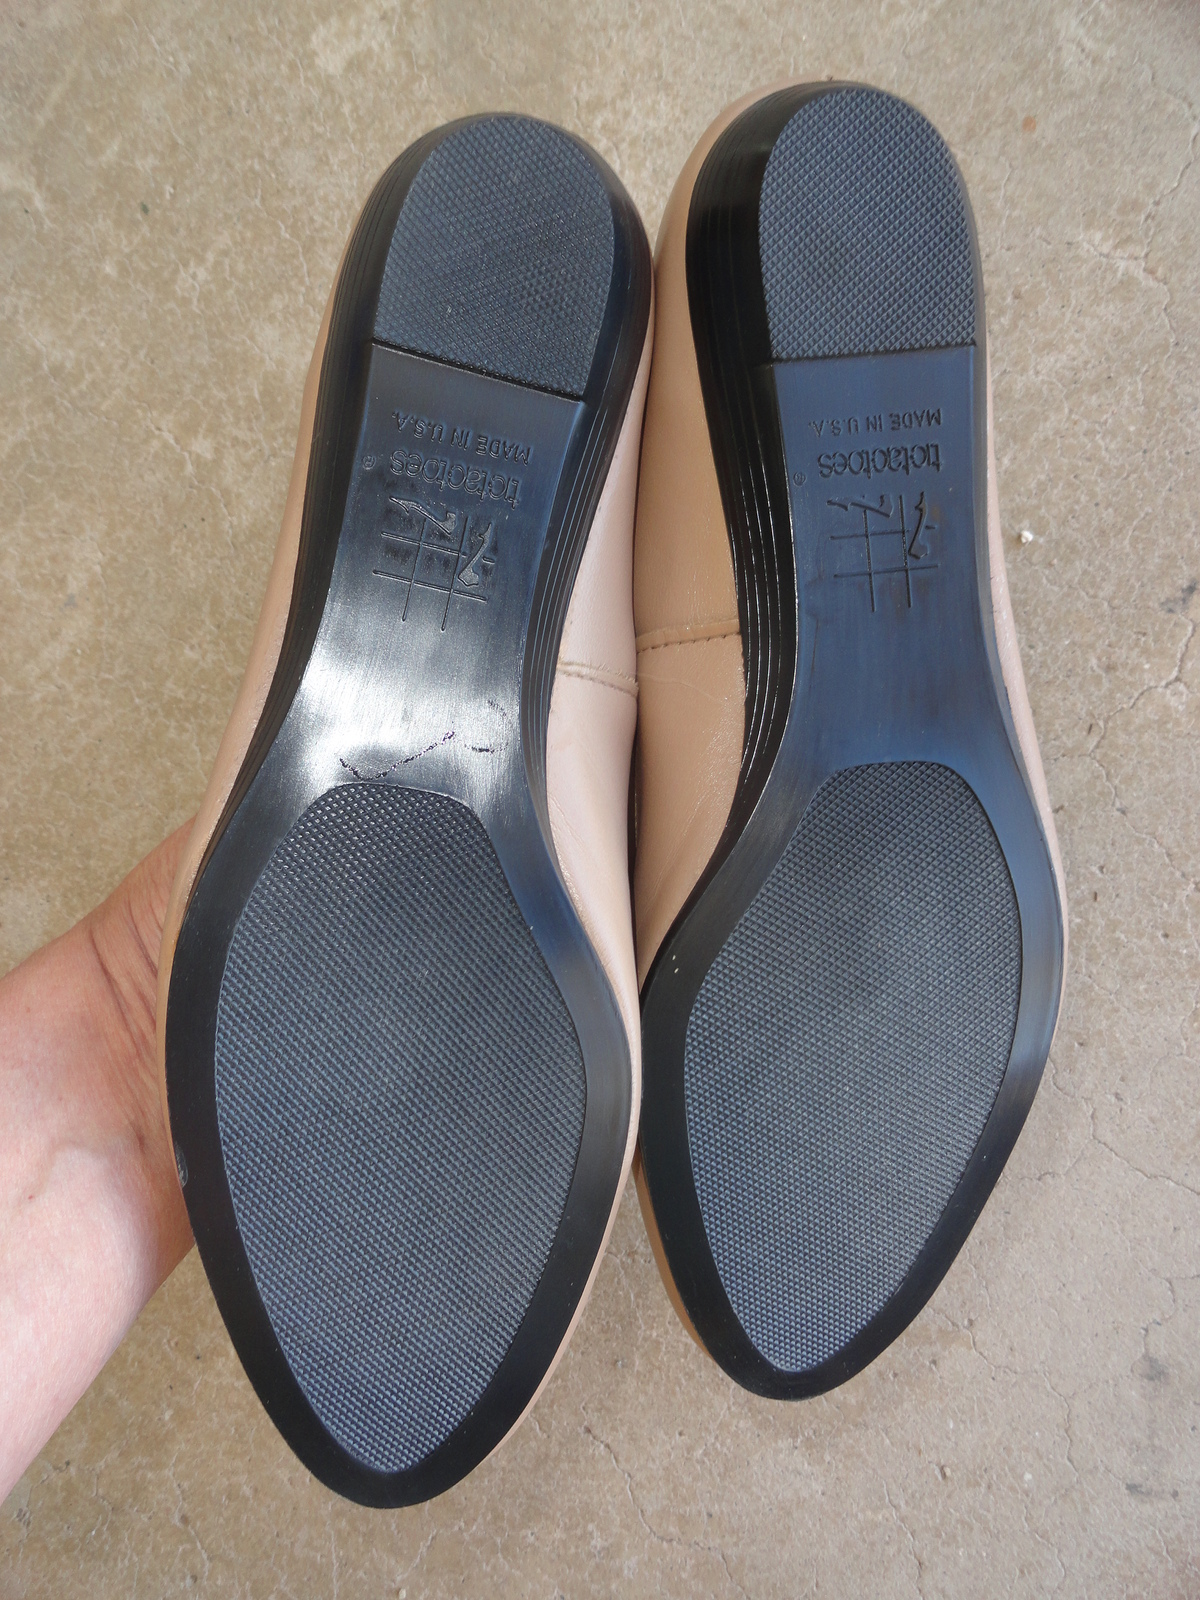 TicTacToes Leather 8.5 Ballet Flat Shoes